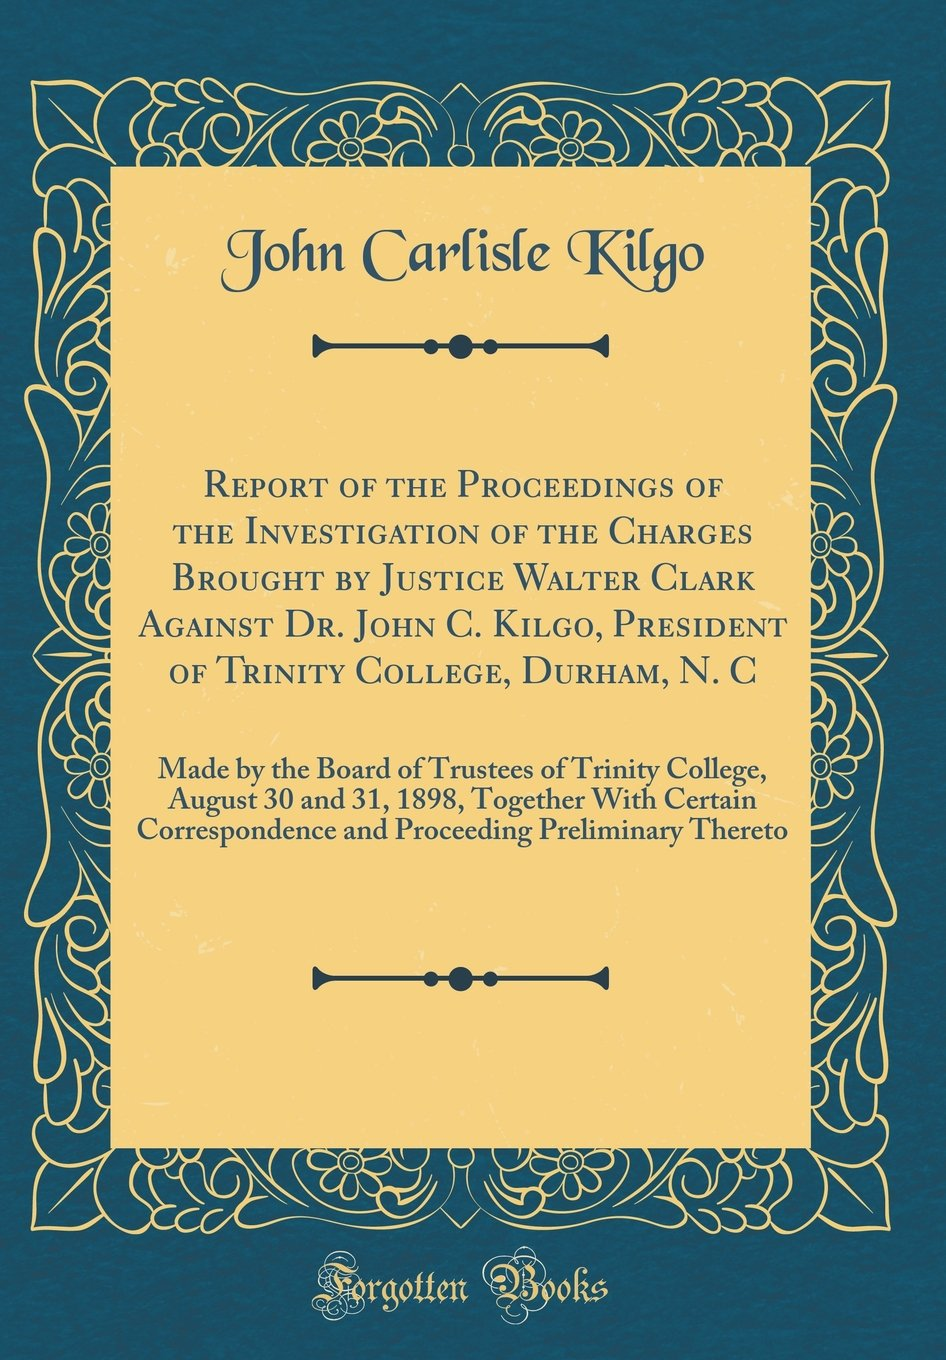 Report of the Proceedings of the Investigation of the Charges Brought by Justice Walter Clark Against Dr. John C. Kilgo, President of Trinity College, ... August 30 and 31, 1898, Together with Ce pdf epub